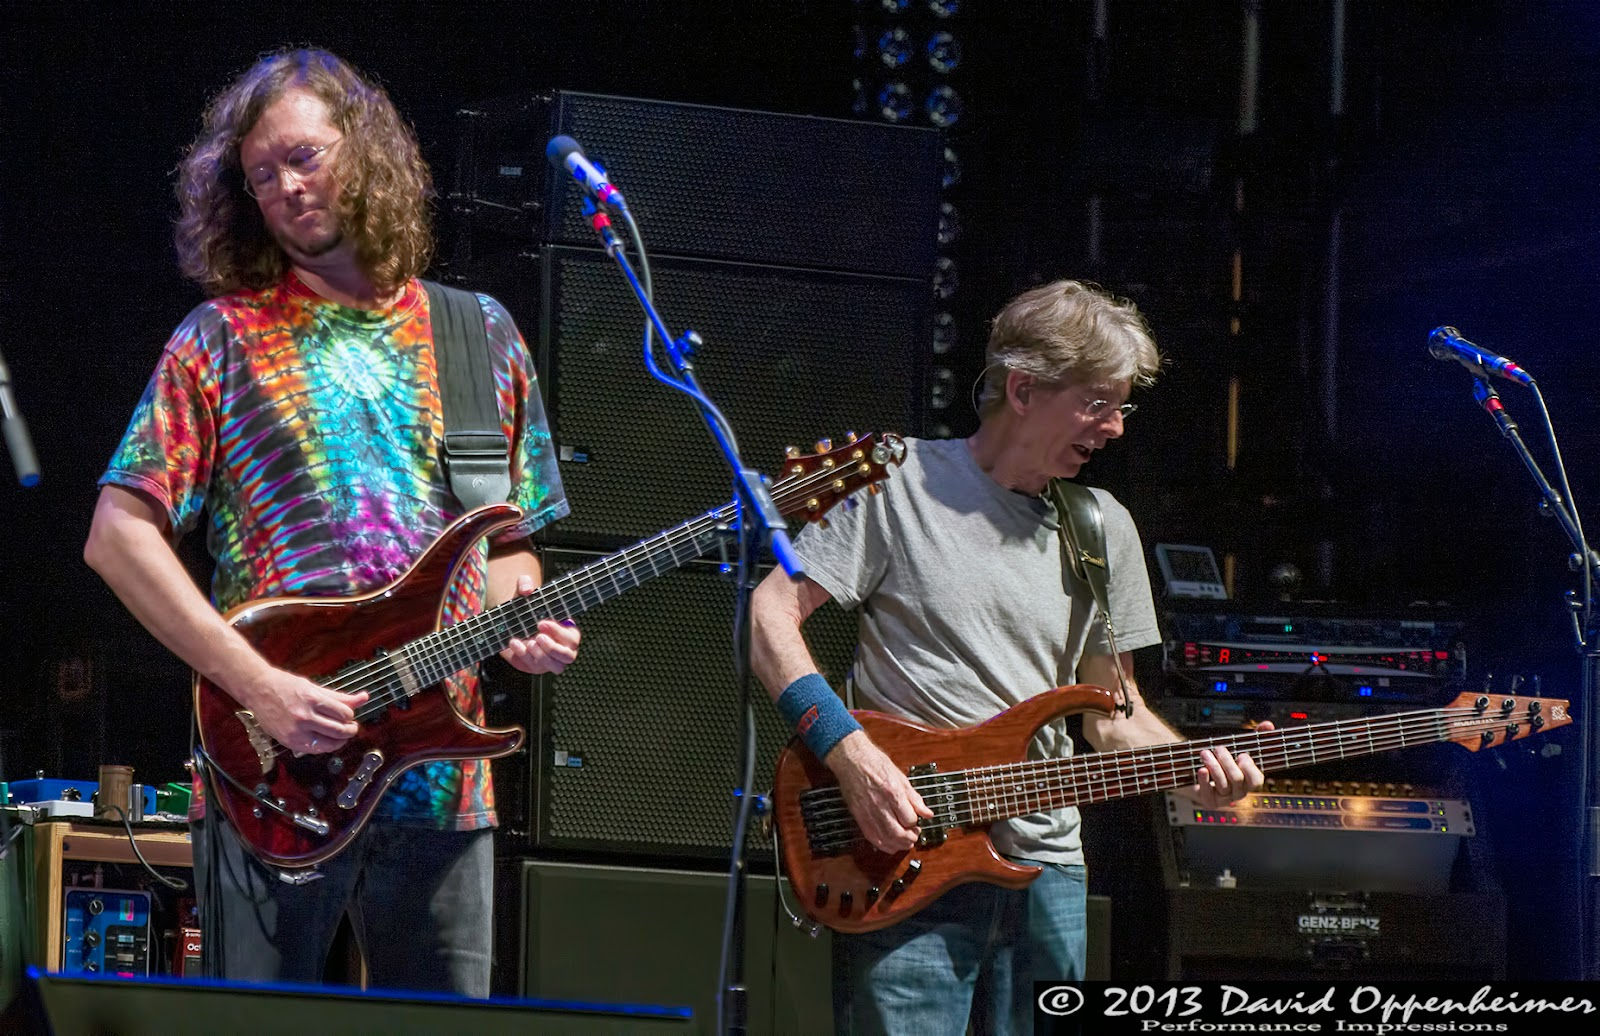 Phil Lesh and John Kadlecik with Futhur